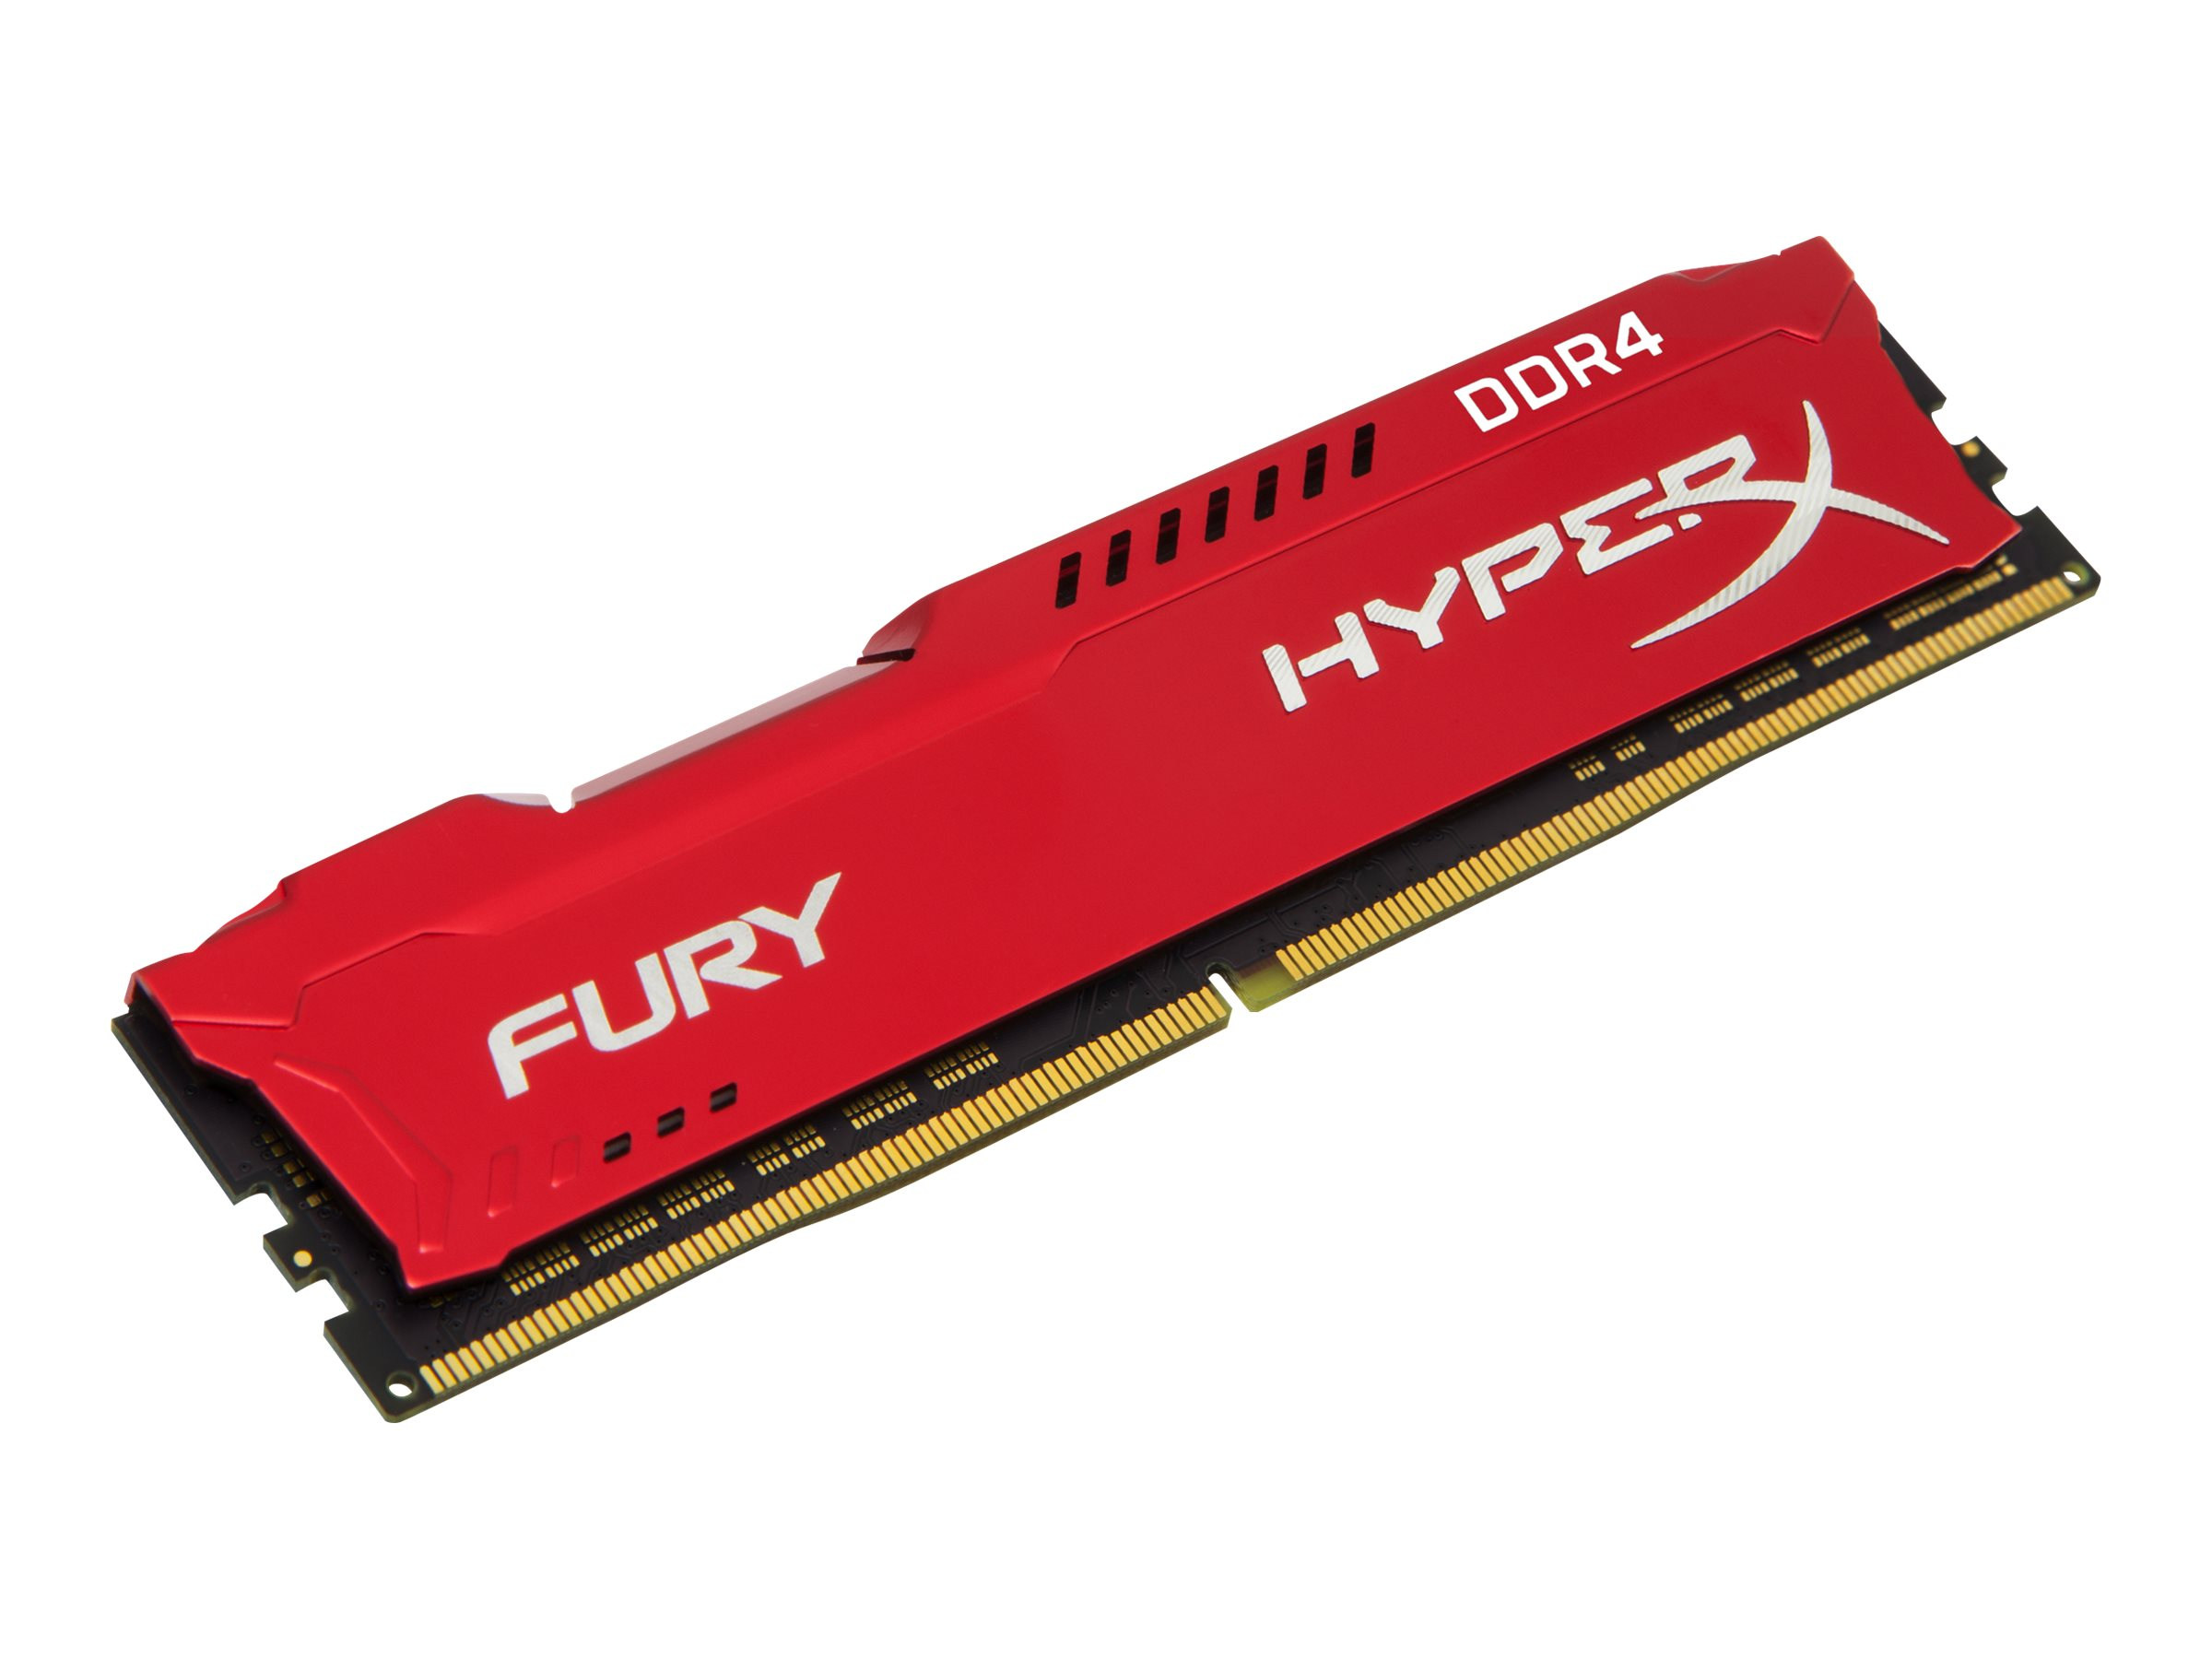 Kingston HyperX FURY - DDR4 - 16 GB - DIMM 288-PIN - 3200 MHz / PC4-25600 CL18 - 1.2 V - ungepuffert - non-ECC - Rot